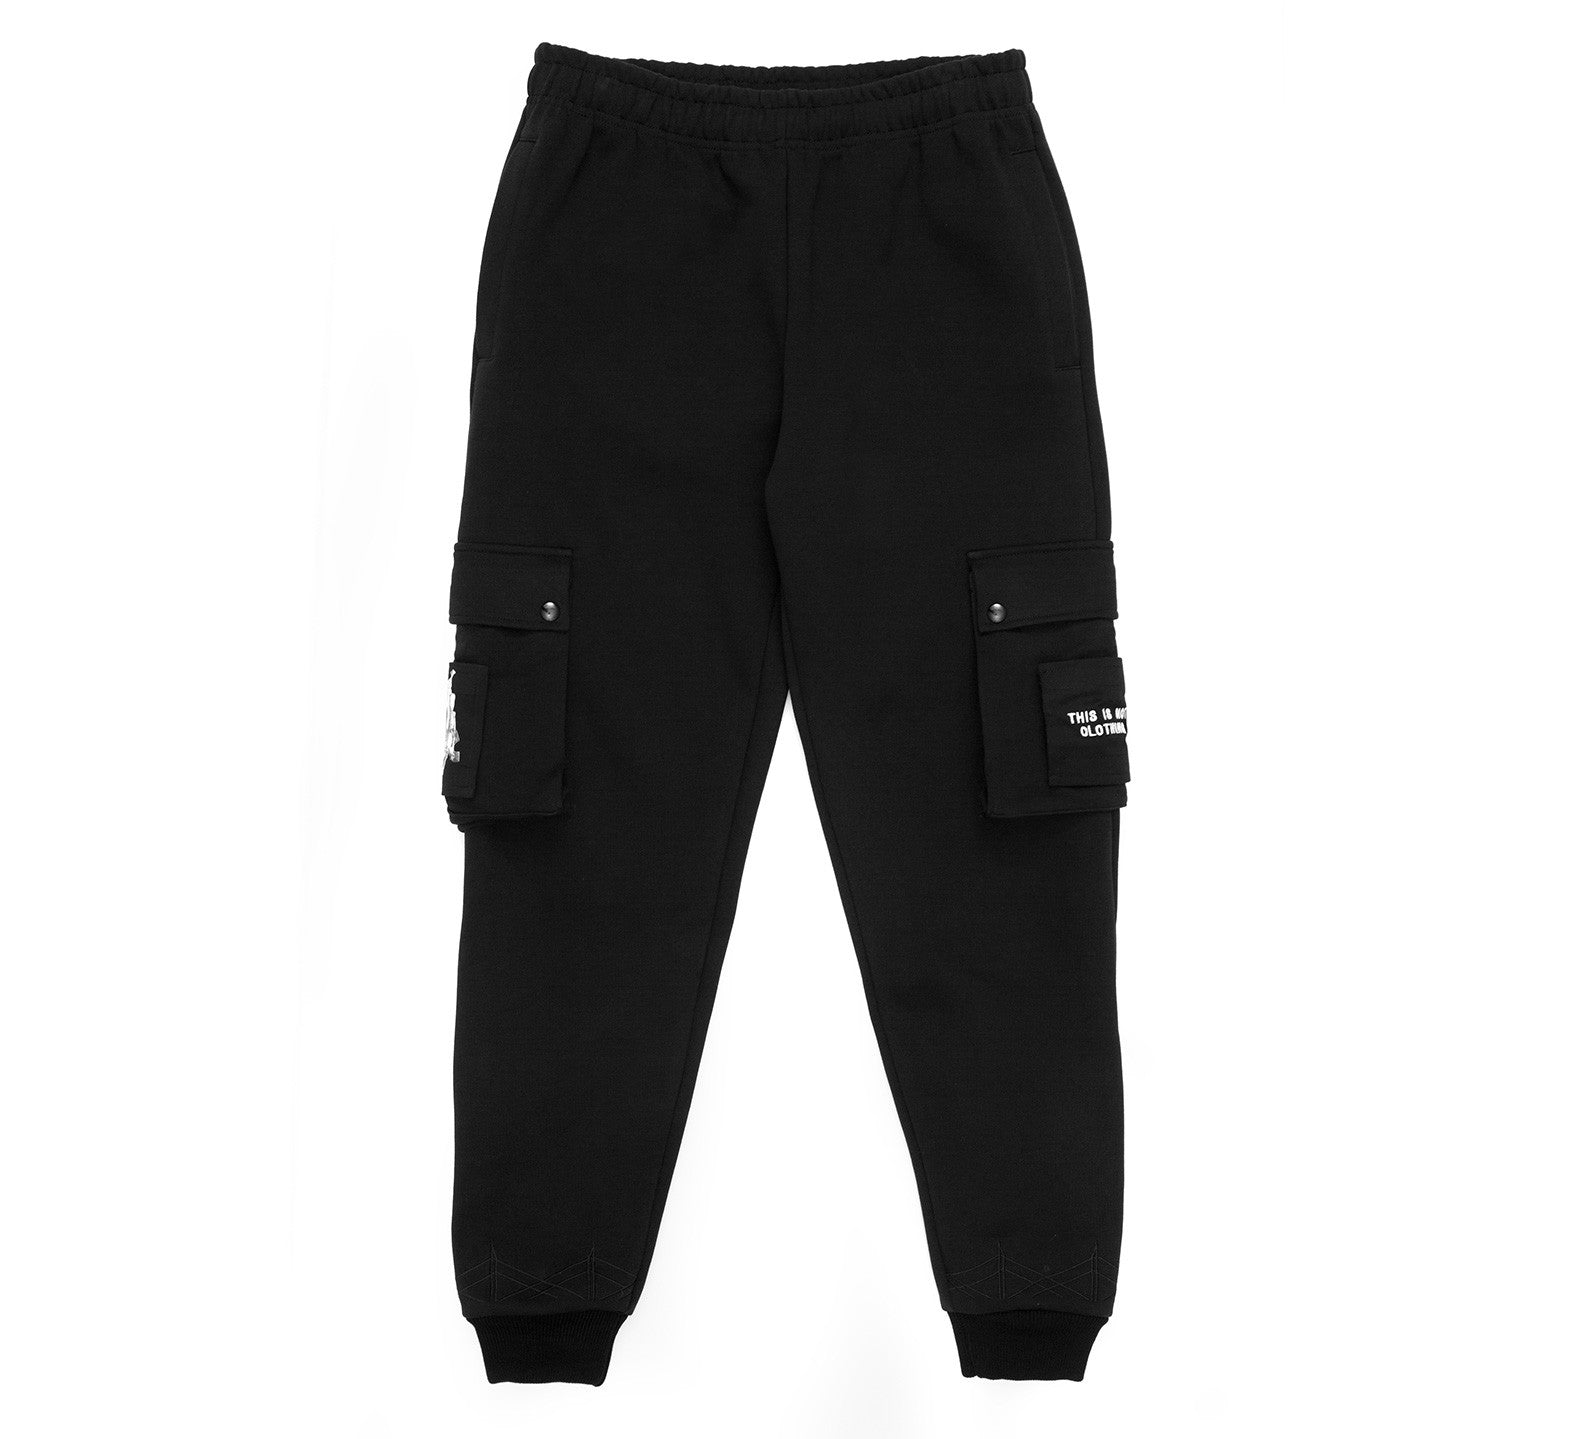 THE MACH1N3 SWEATPANTS